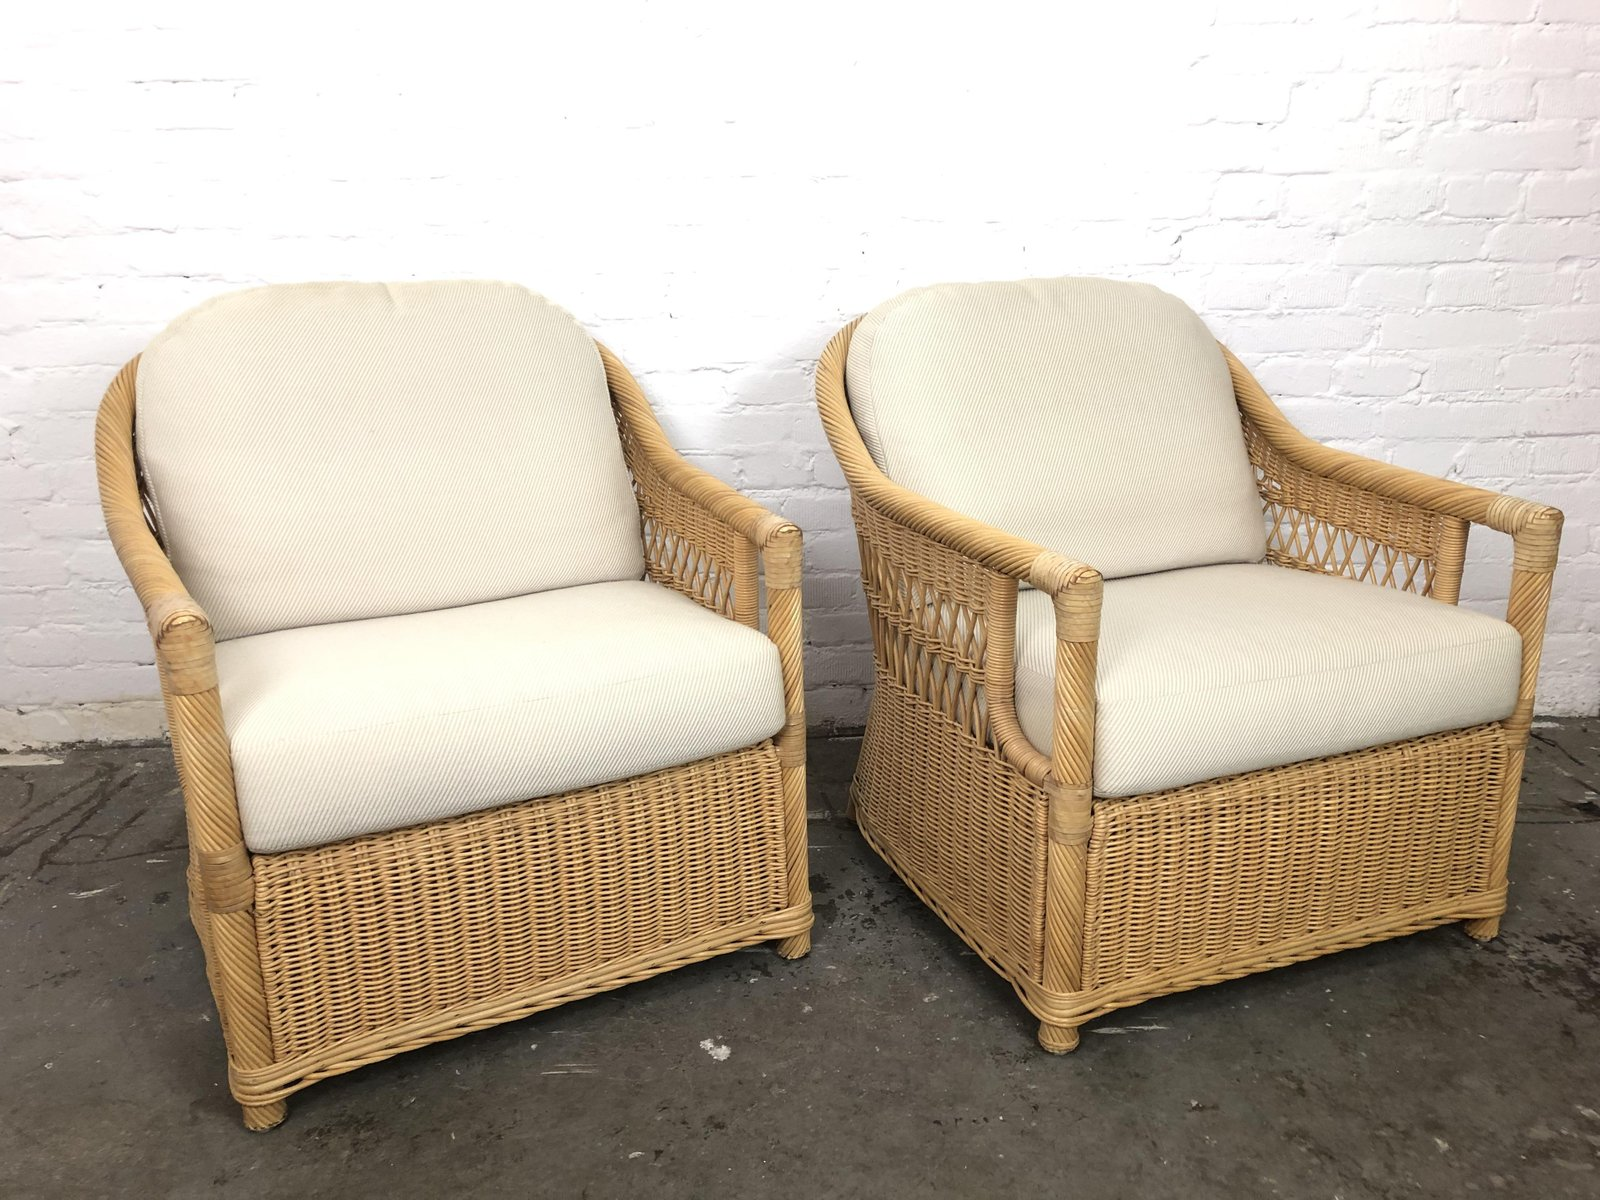 Miraculous Vintage Rattan Lounge Chairs Set Of 2 Beatyapartments Chair Design Images Beatyapartmentscom